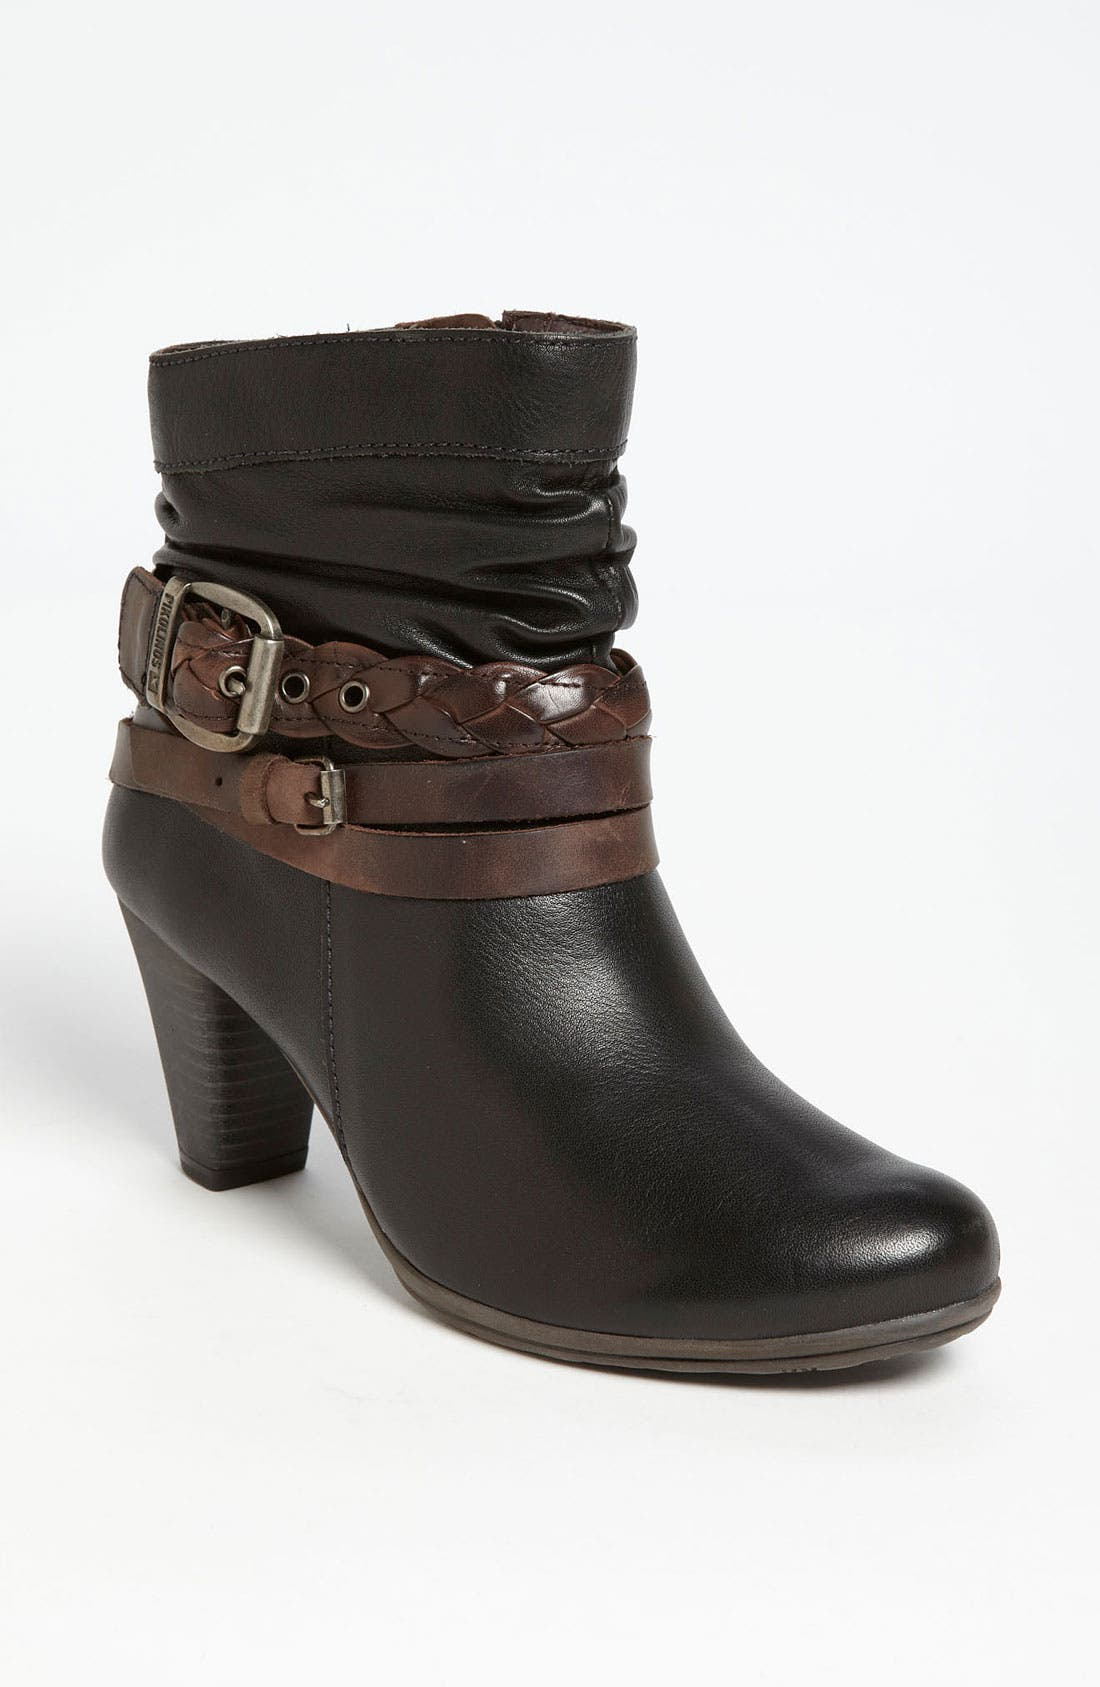 Alternate Image 1 Selected - PIKOLINOS 'Verona' Ankle Boot